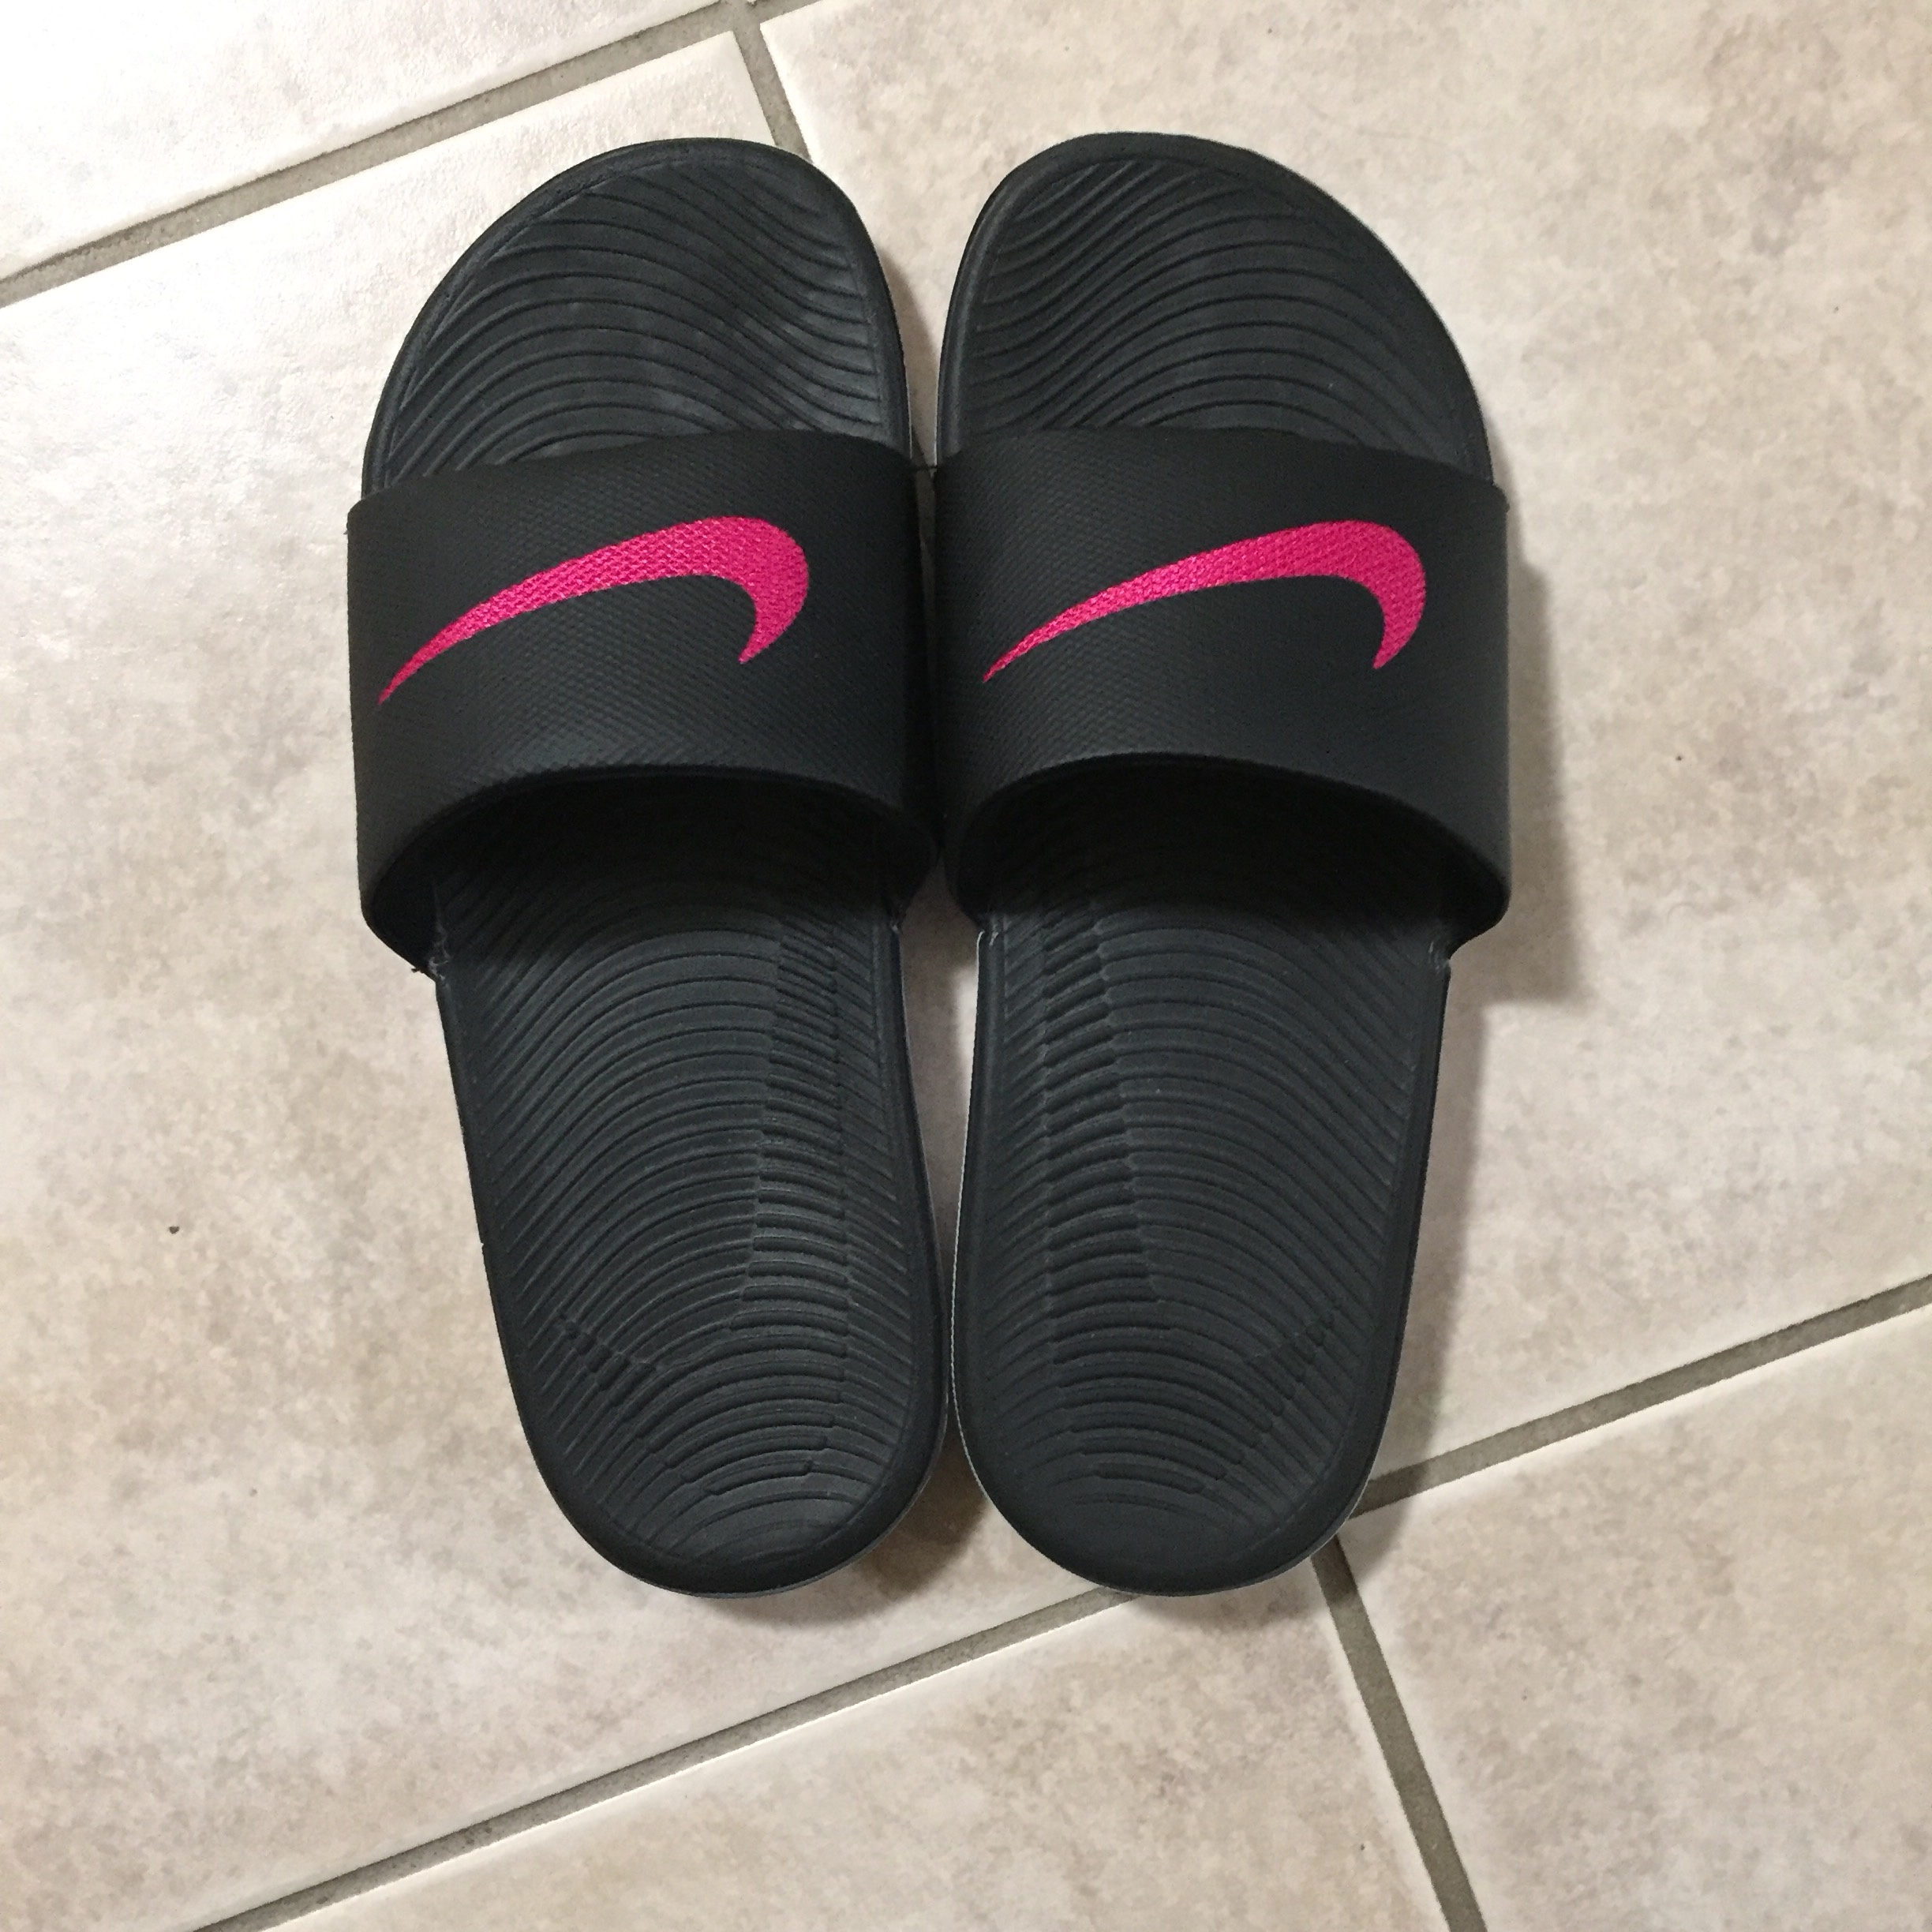 official photos 9d7e7 cc276 Nike Slippers Color:Black and pink Size:8 Condition:... - Depop